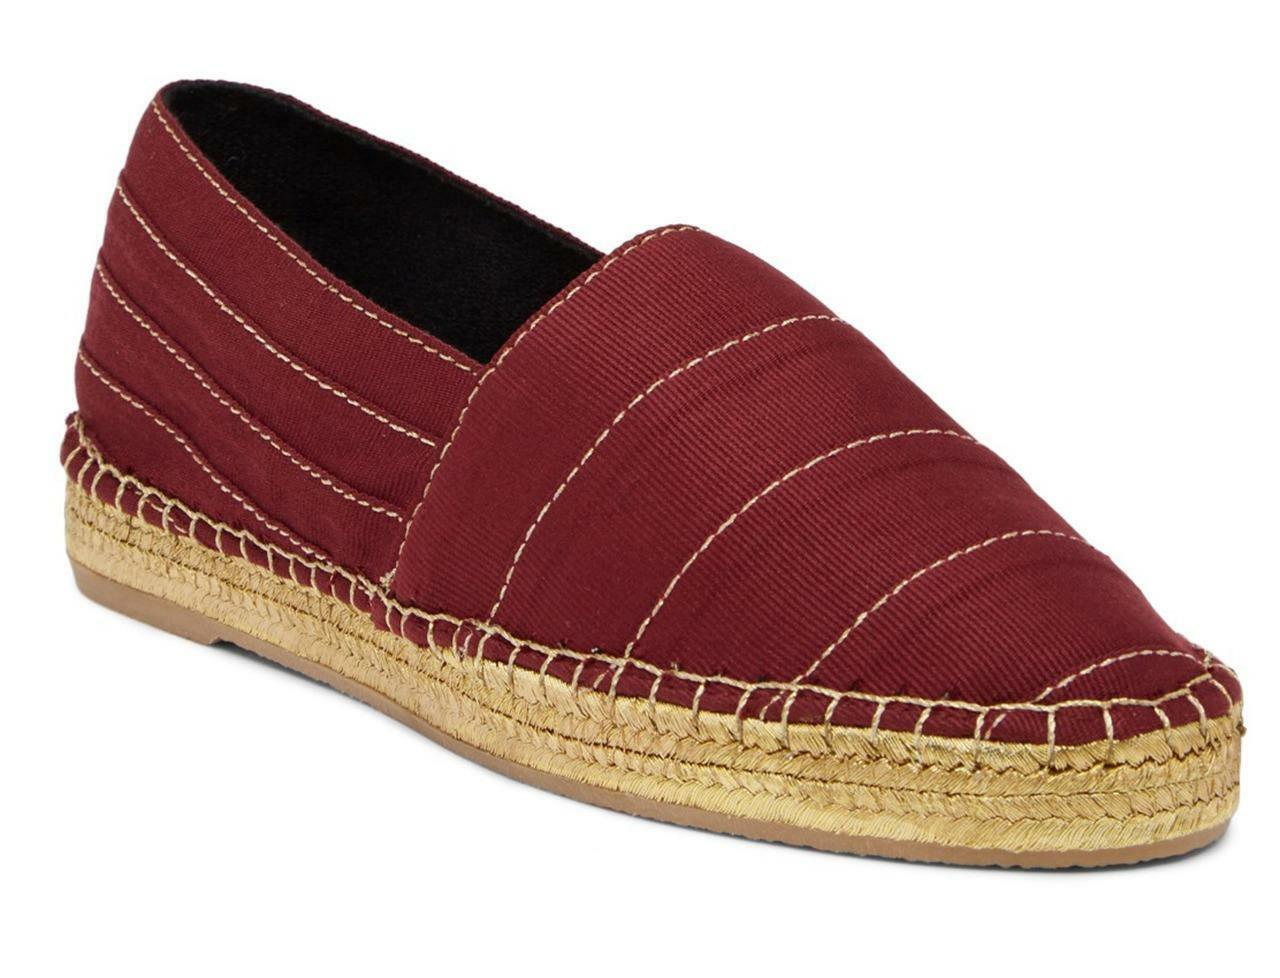 New in Box - 250 Jacobs Marc Jacobs 250 Sienna Bordeaux Espadrille Flat Größe 7 (37) 0dd879